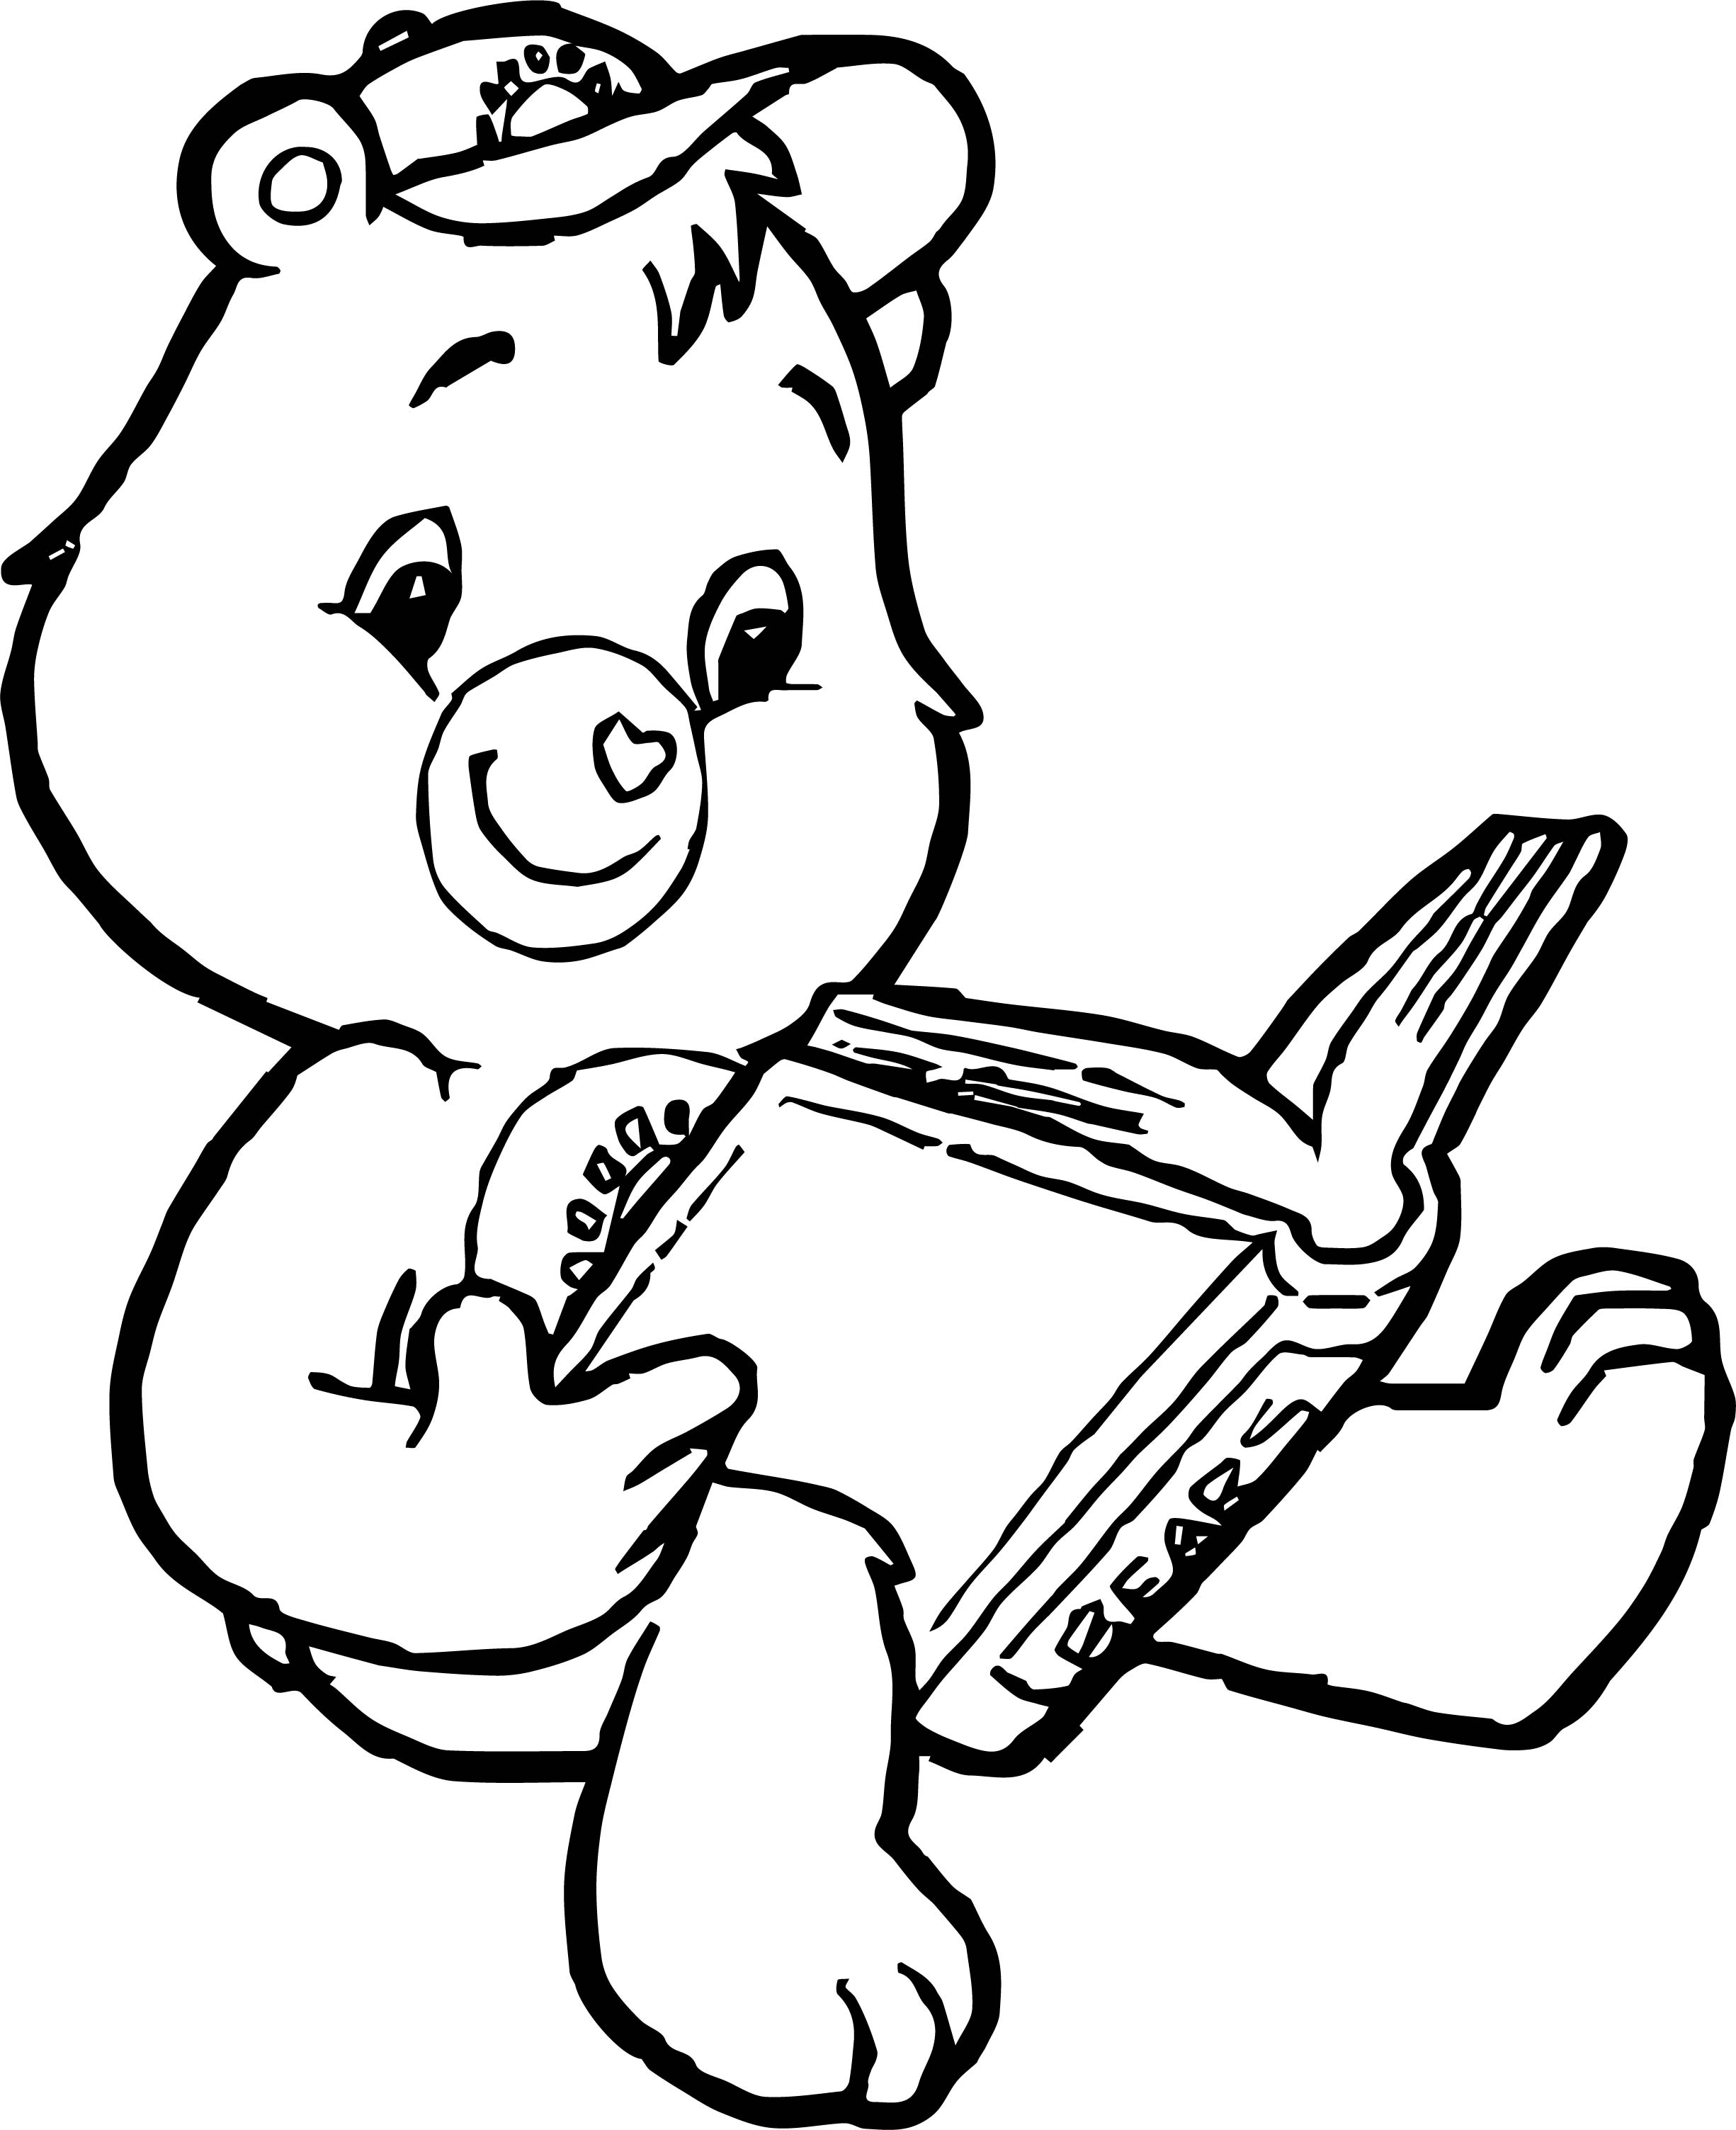 2451x3007 Awesome Crab Reading Book Coloring Pages Design Great Collection